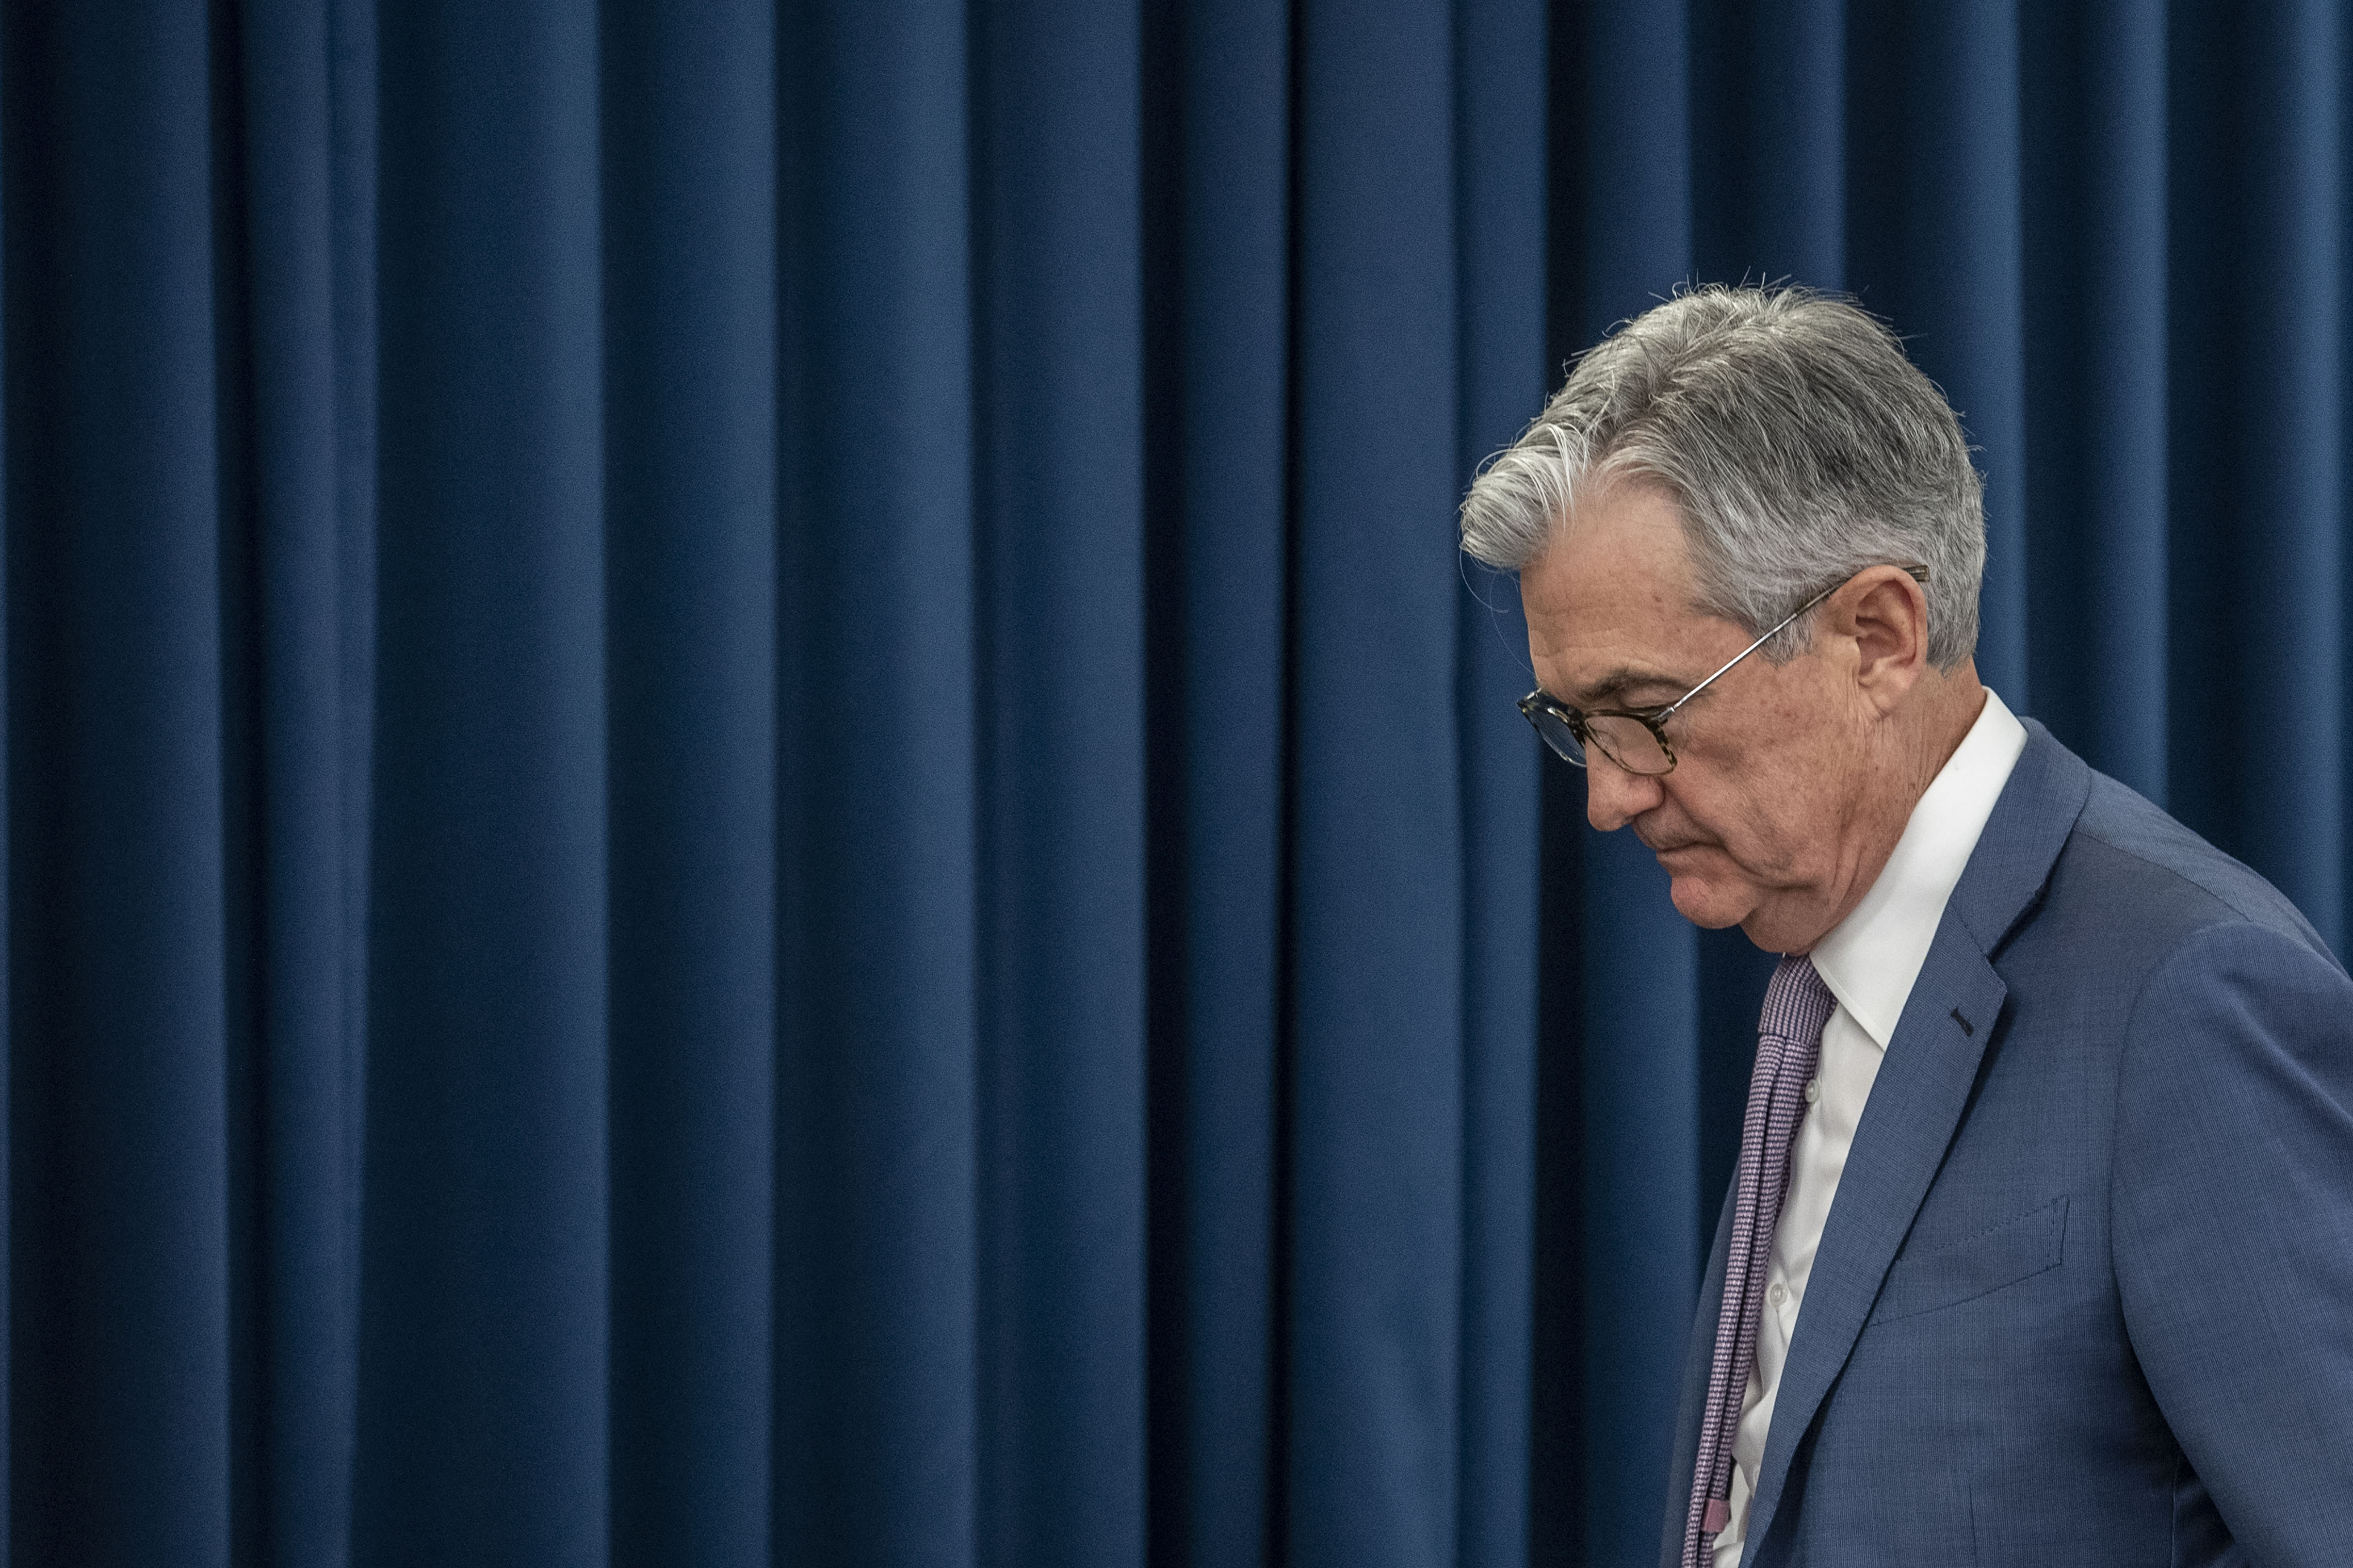 Federal Reserve Chairman Jerome Powell May Be Trying To Squash The Stock Market Bubble